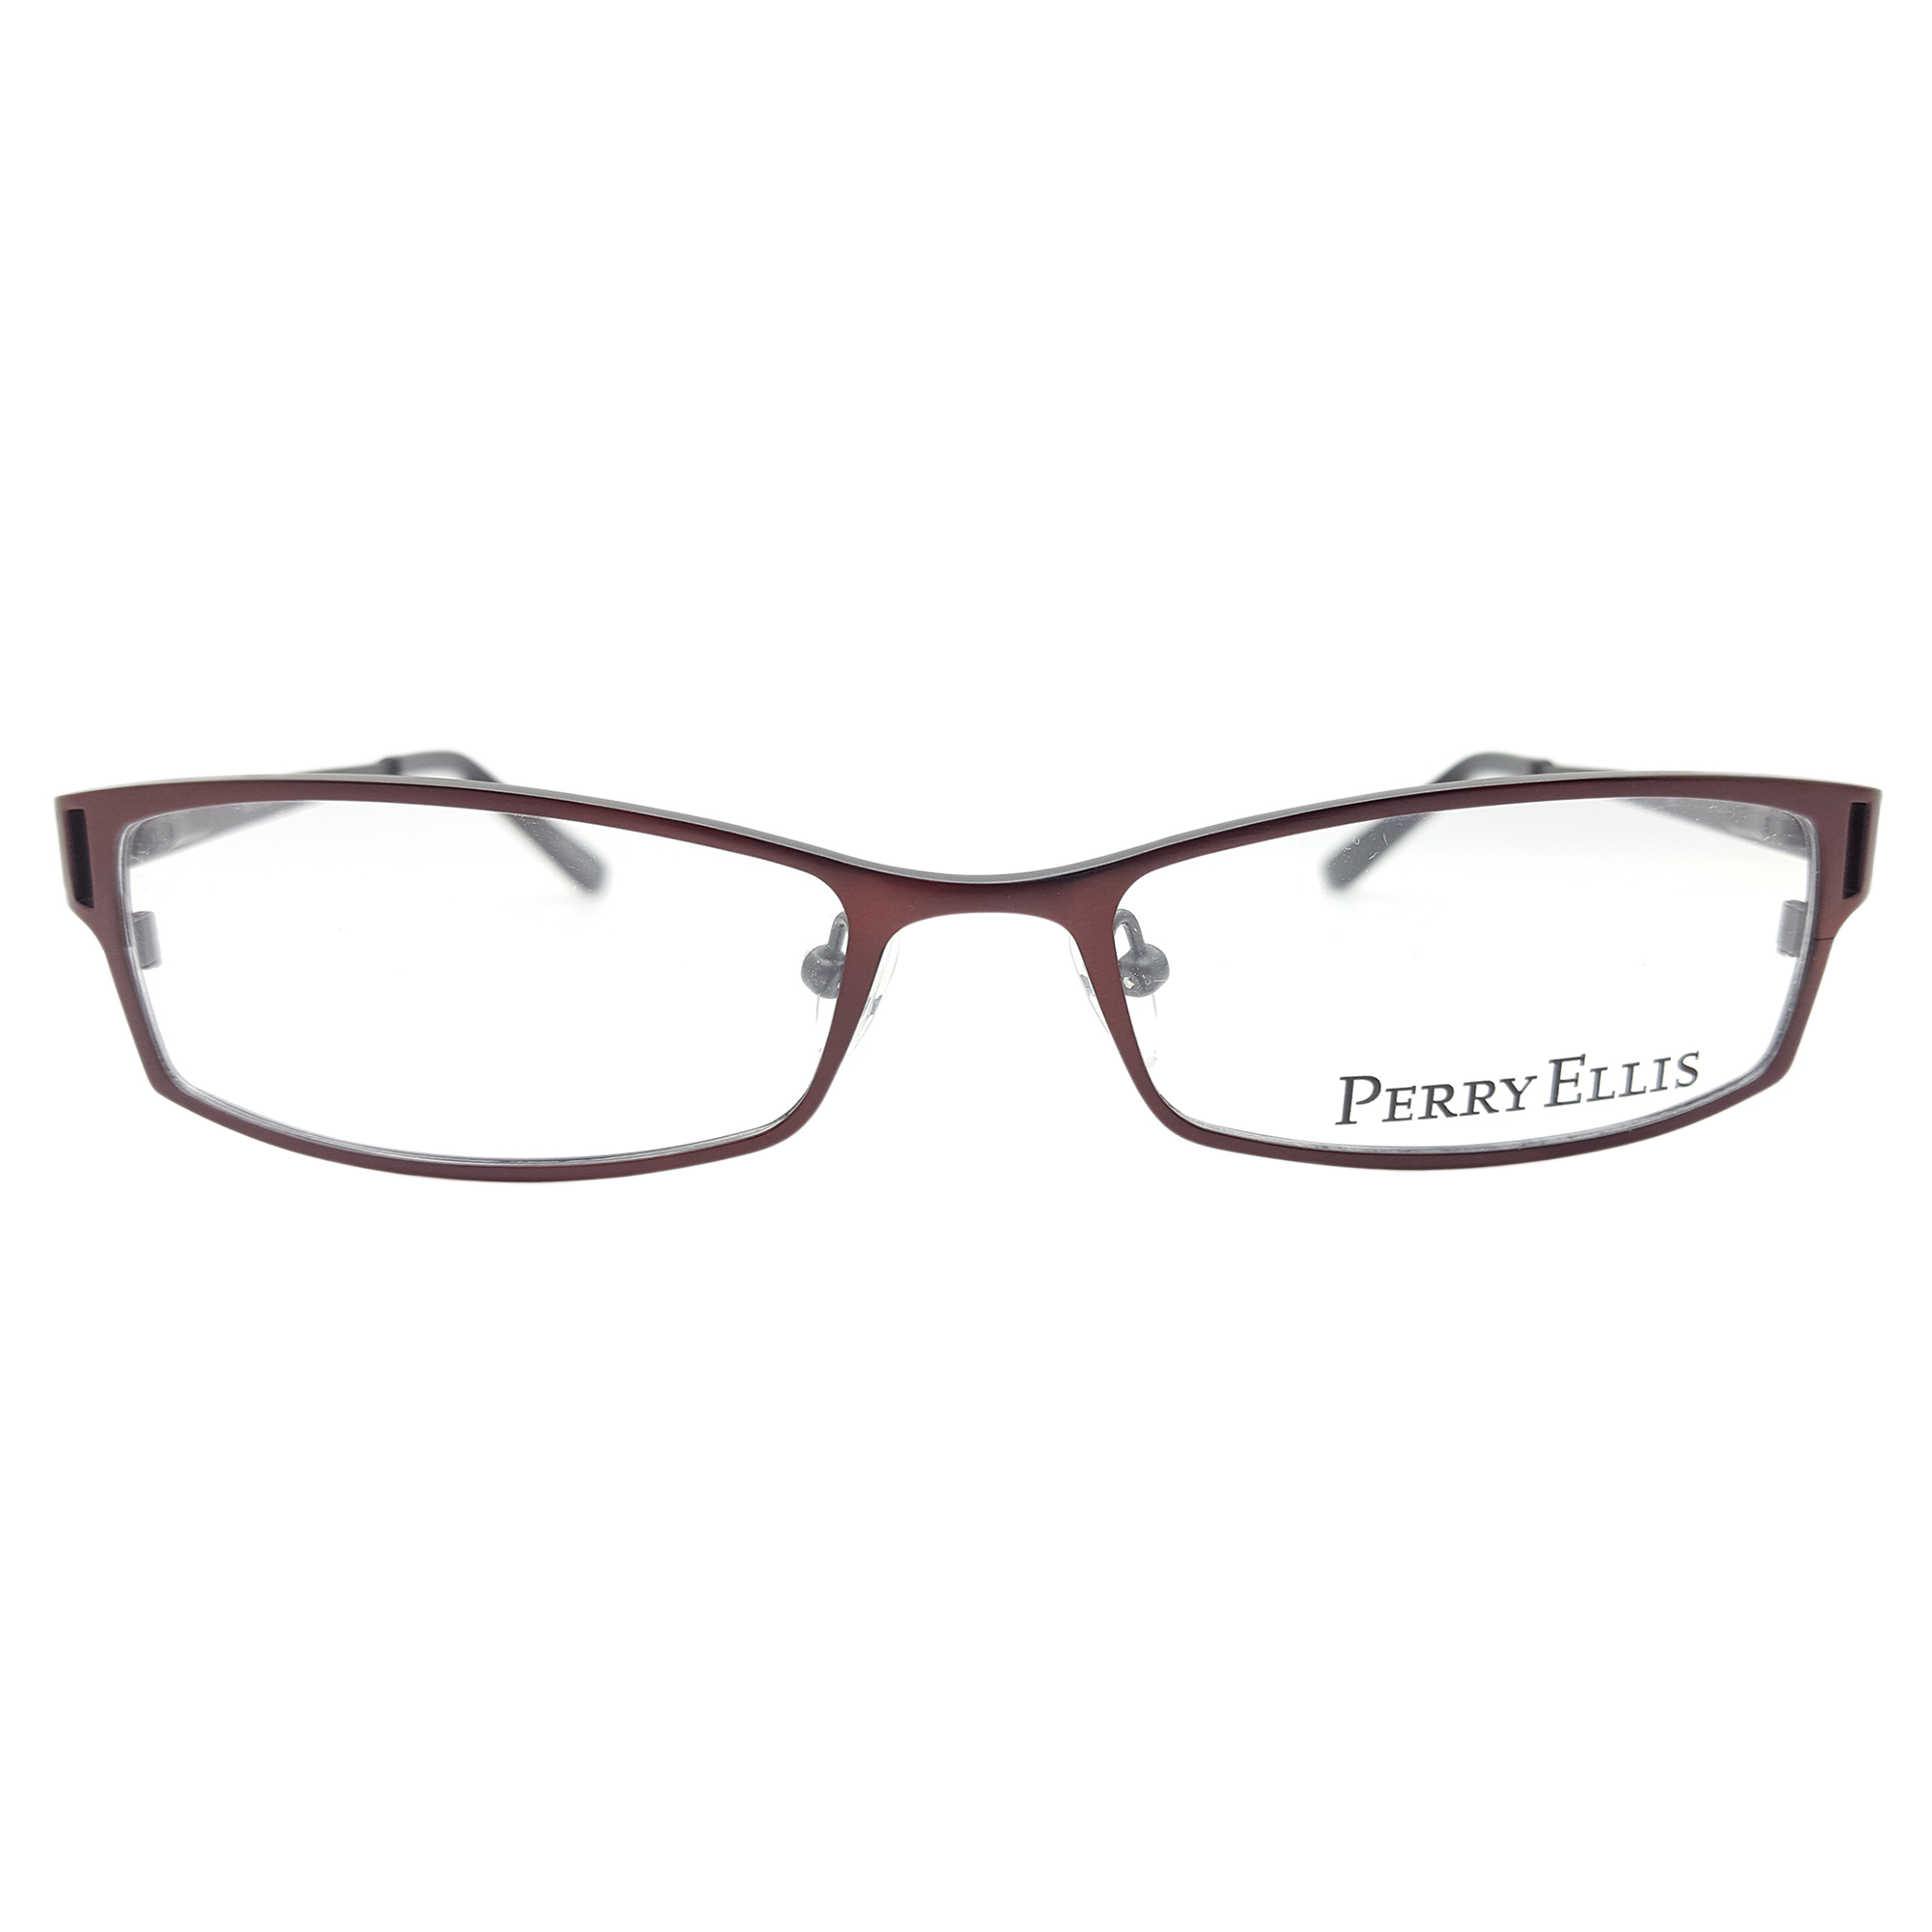 Perry Ellis Men's PE233 Eyeglasses Prescription Frames, (Brwn/Blk, 53-17-135) - Walmart.com at Walmart - Vision Center in Connersville, IN | Tuggl